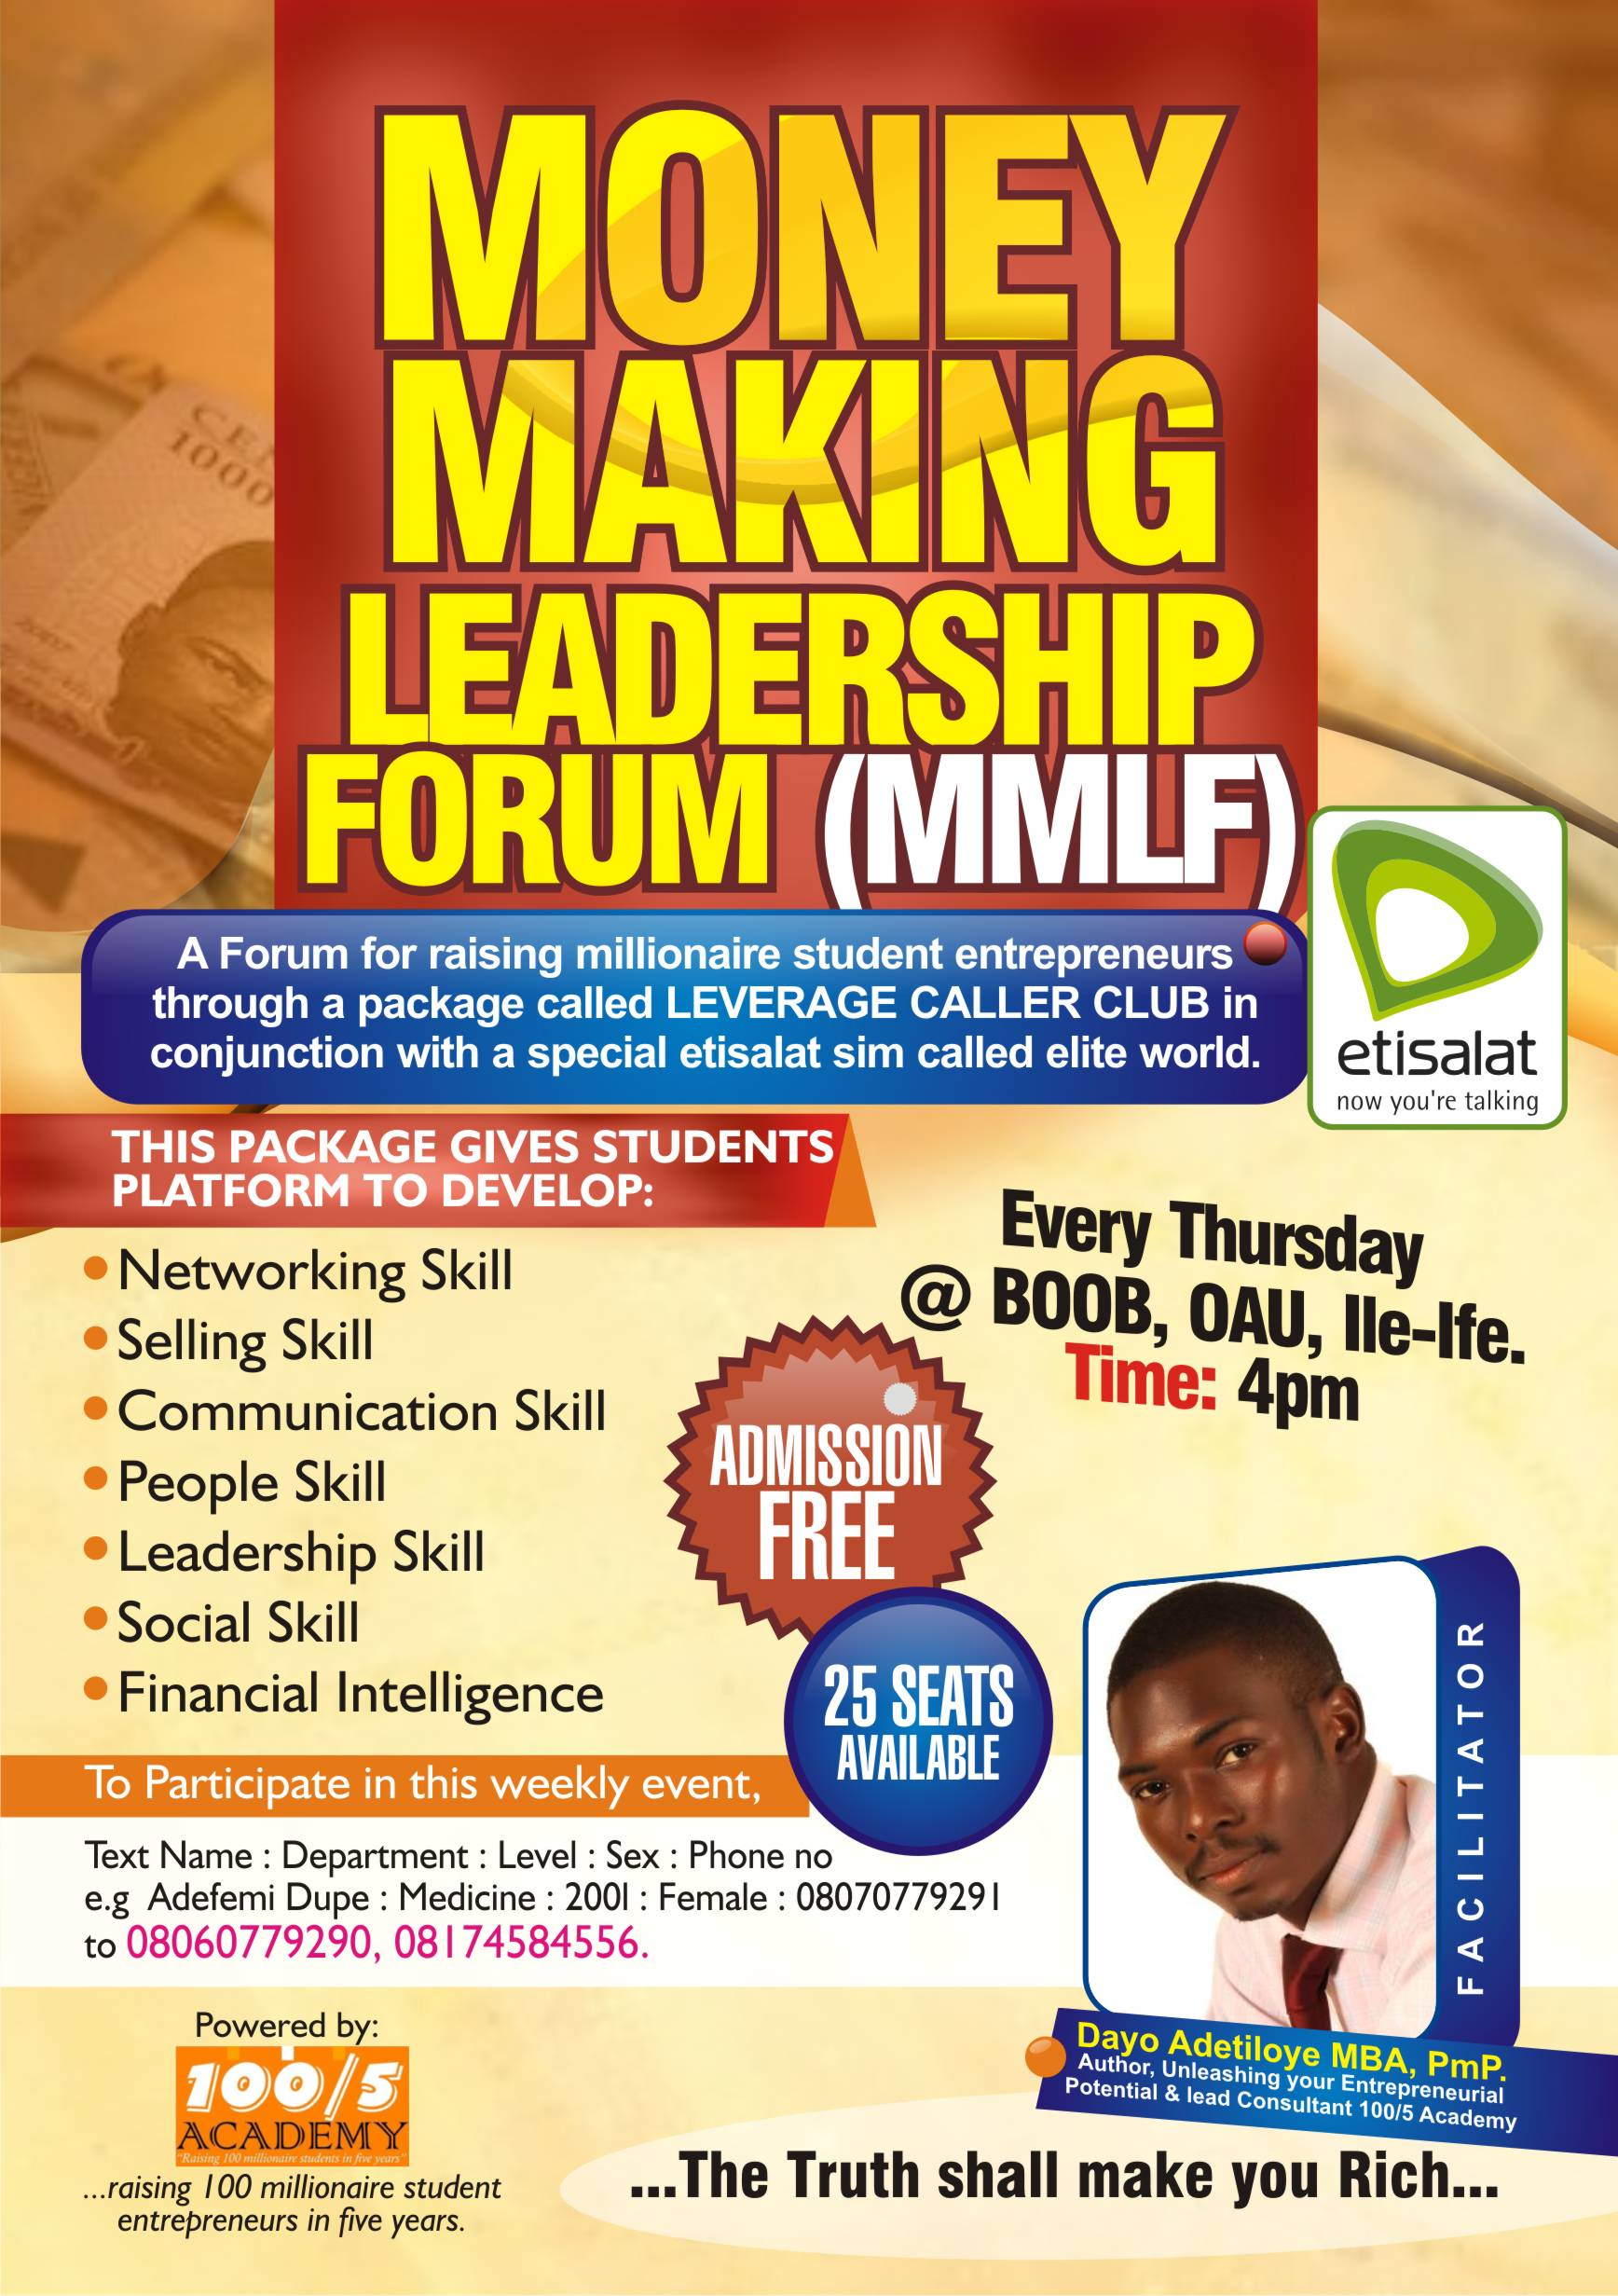 MONEY MAKING LEADERSHIP FORUM